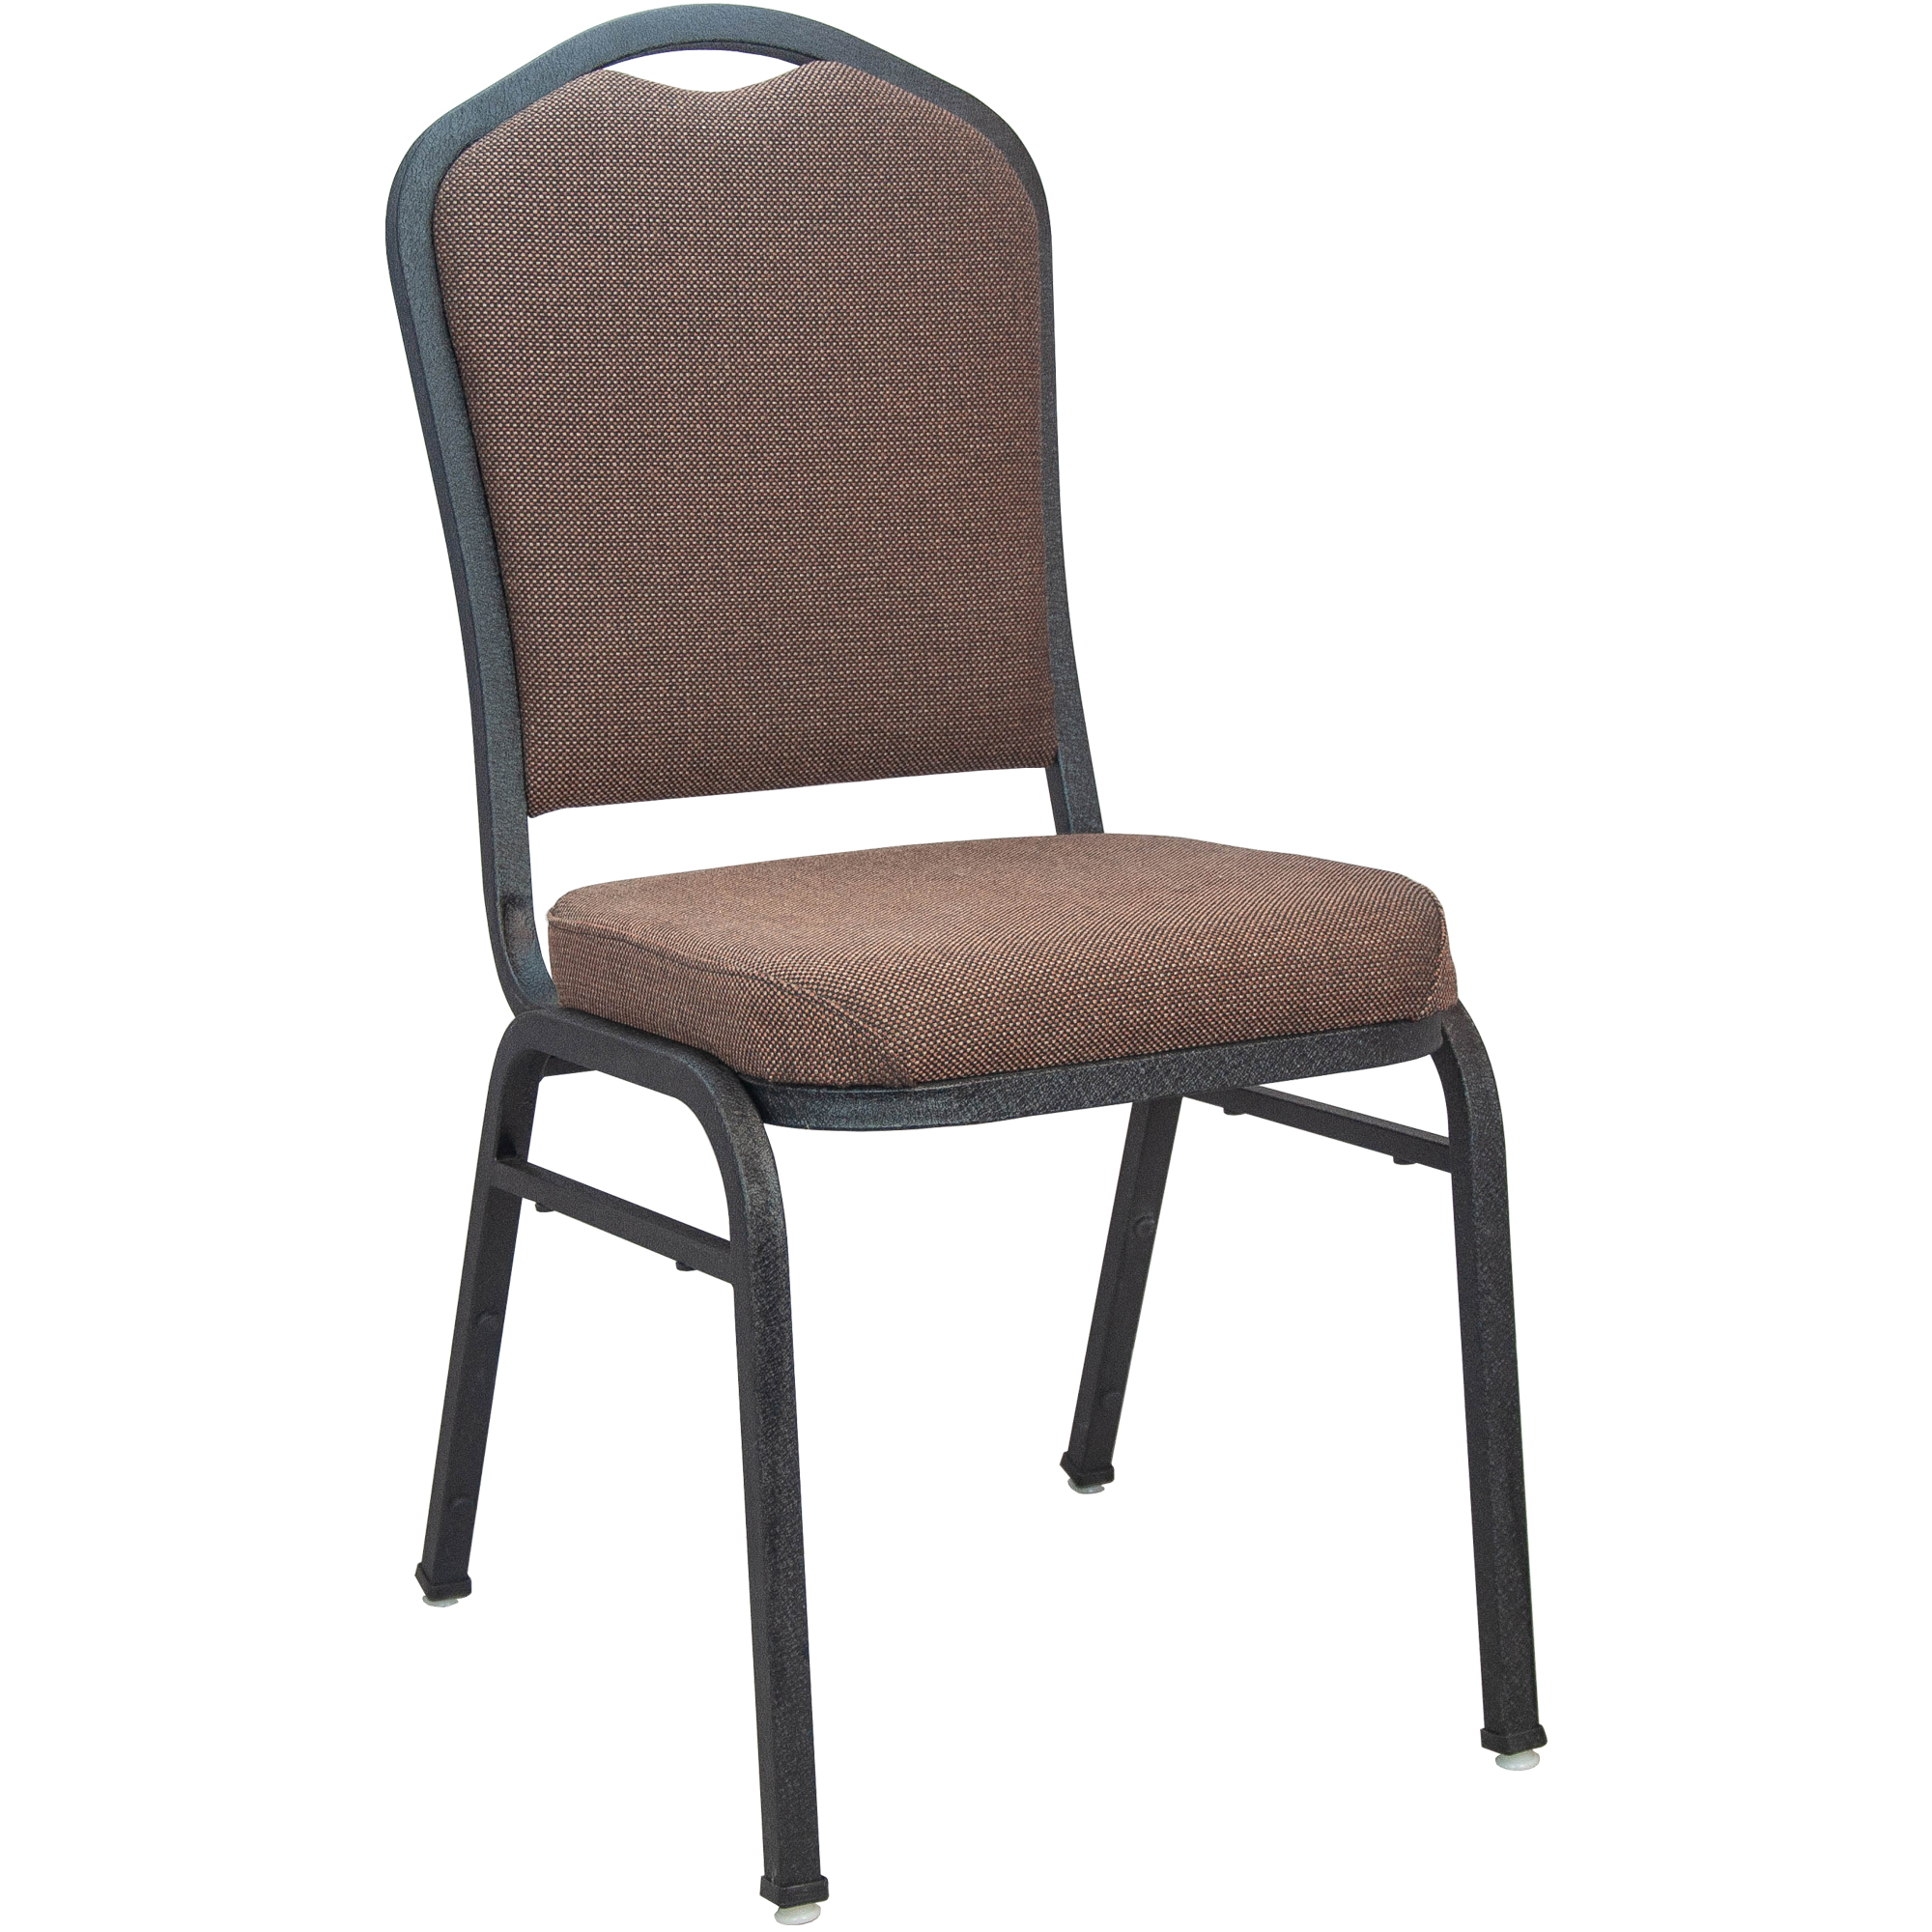 #54 -  Crown Back Banquet Chair with Java Fabric and Black Vein